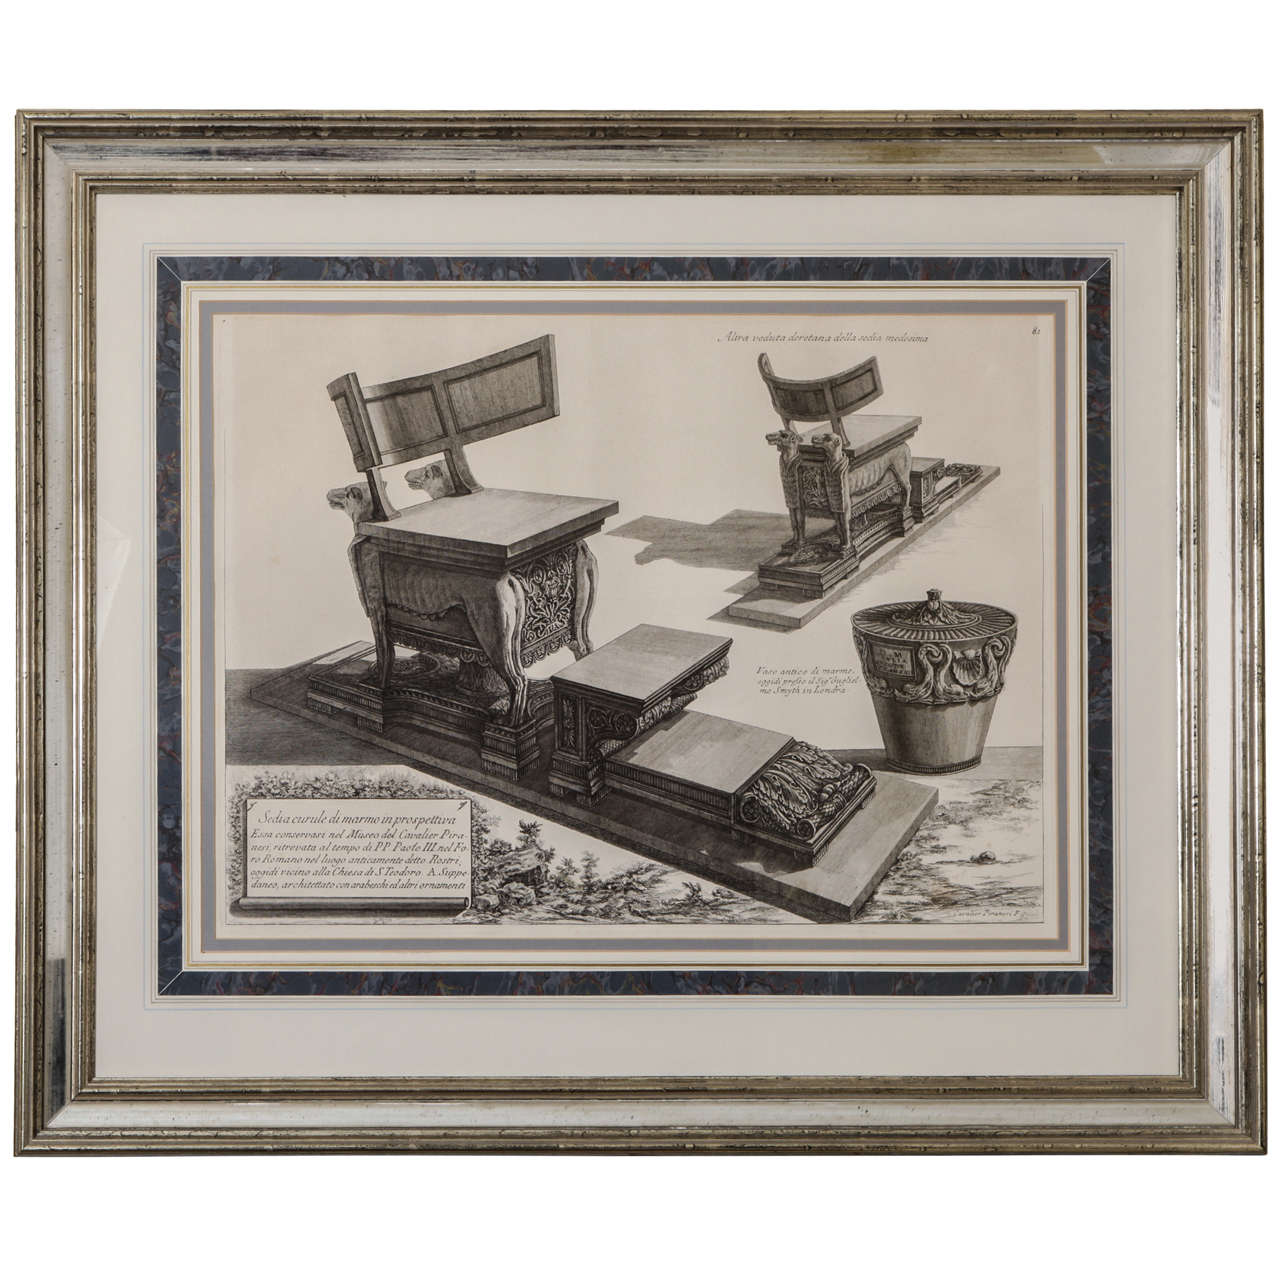 Ancient roman furniture chairs - Framed Antique Etching By Piranesi Of An Ancient Roman Curule Chair 1